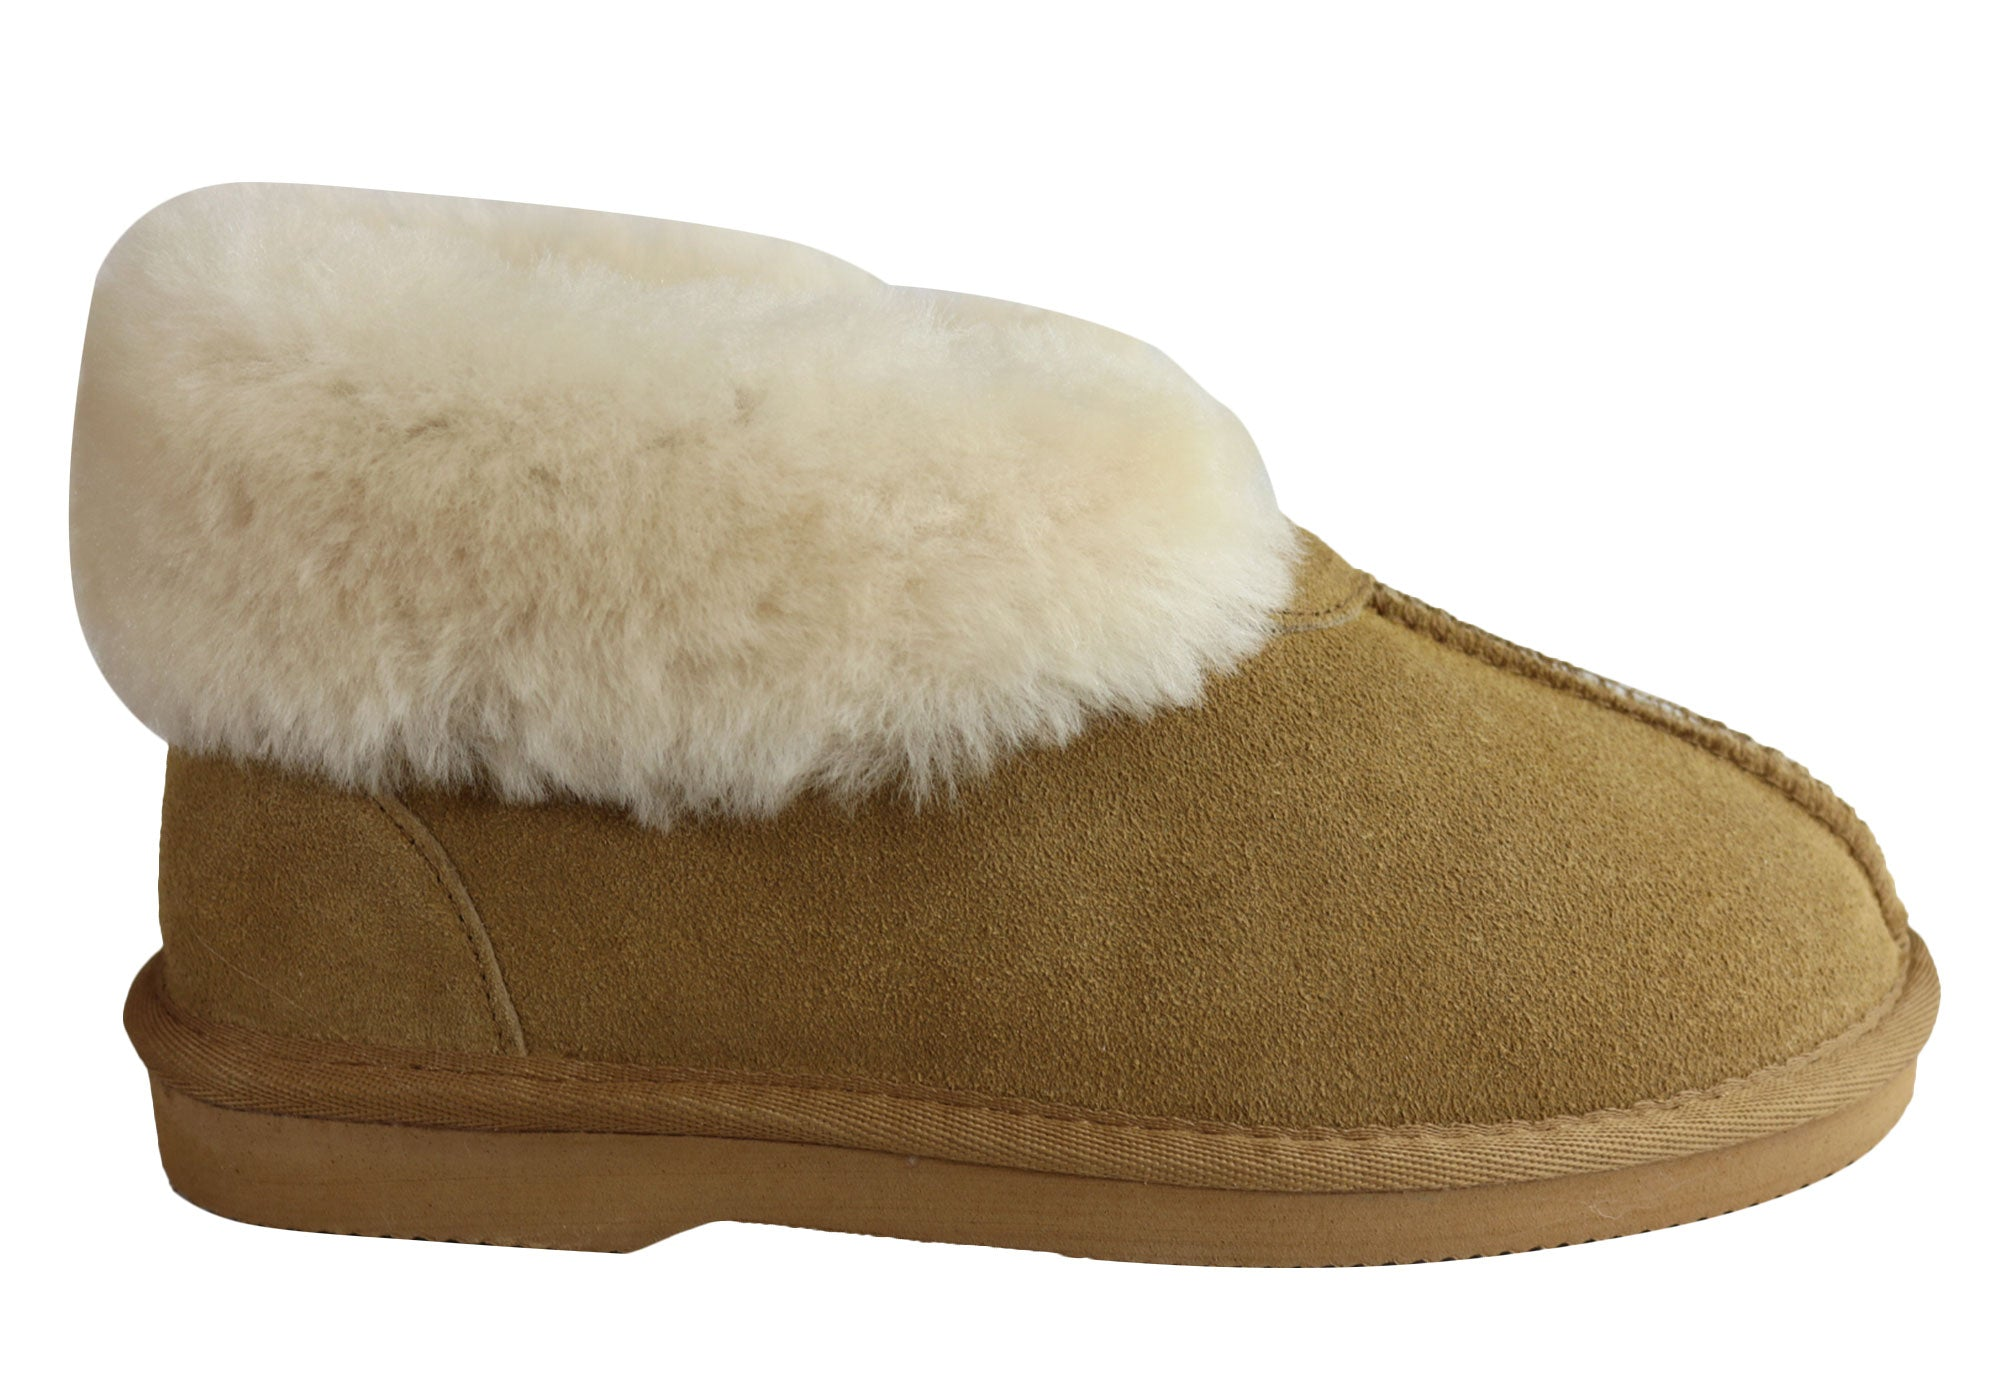 dc455e688d0 Grosby Princess Ugg Womens Warm Comfy Sheepskin Lining Slipper Boots ...